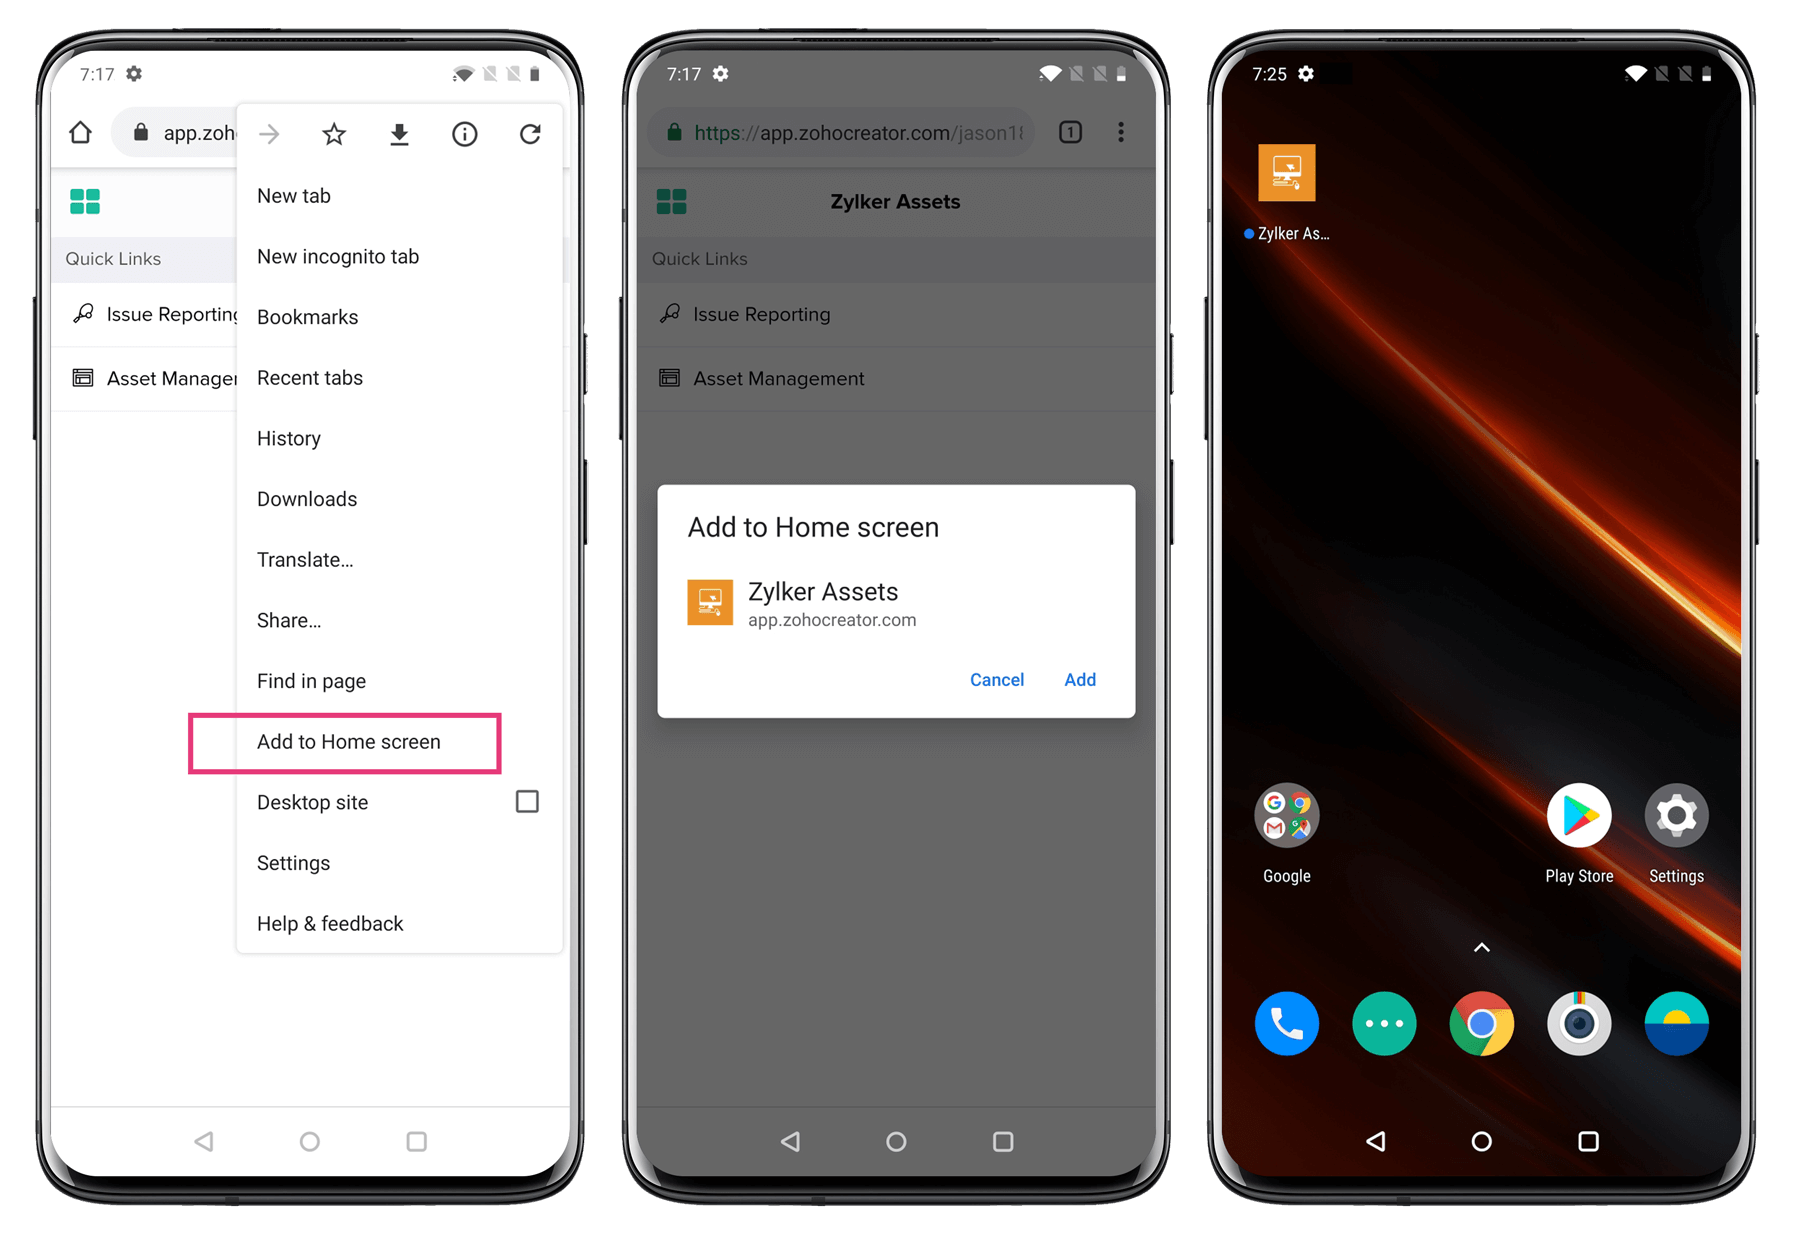 Android - Add app to Home screen